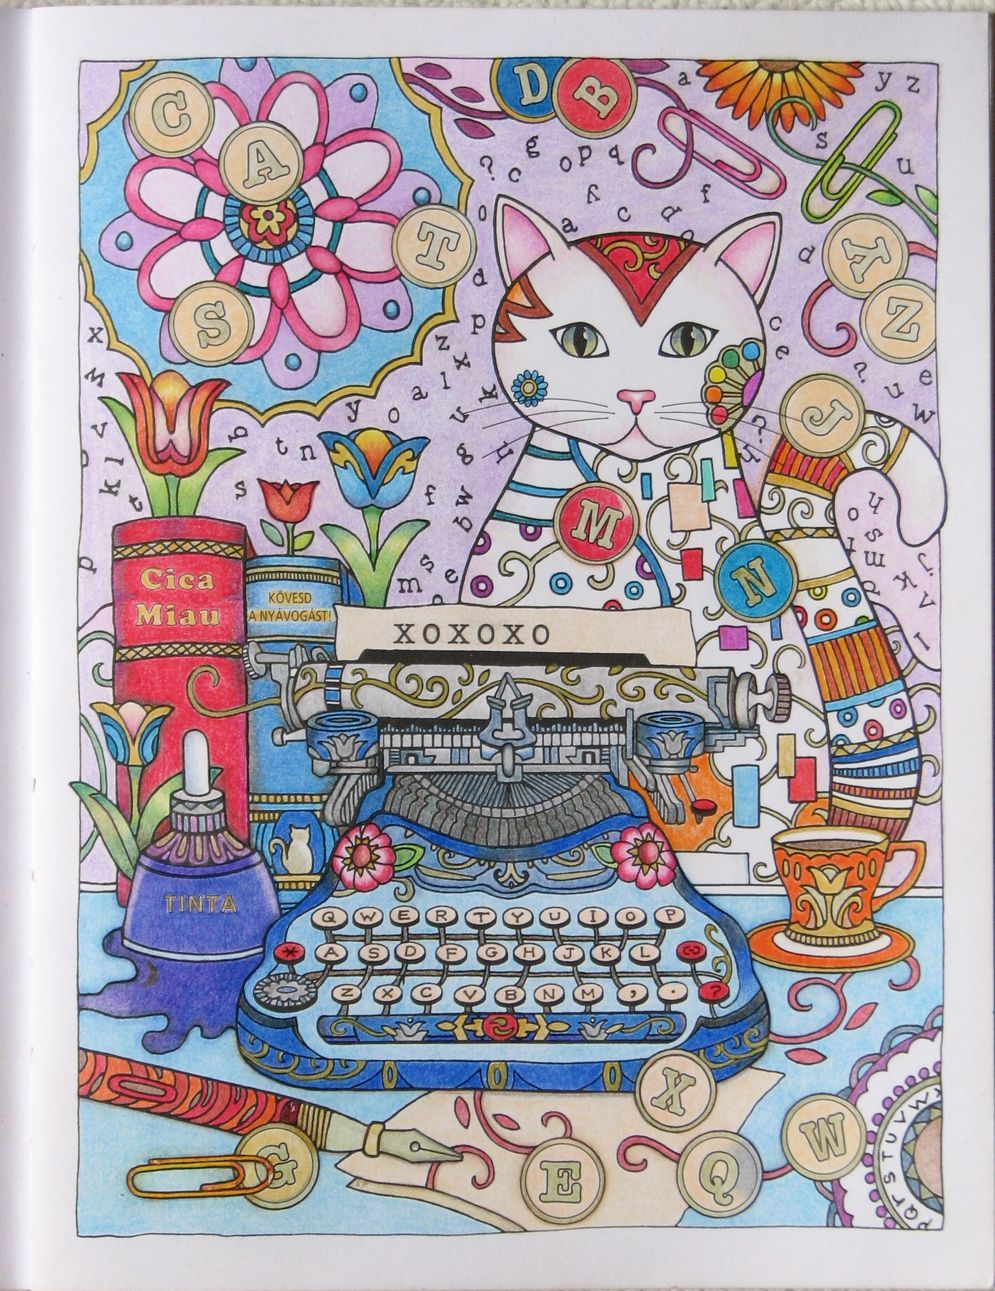 Adult coloring page creative cats colouring books marjorie sarnat